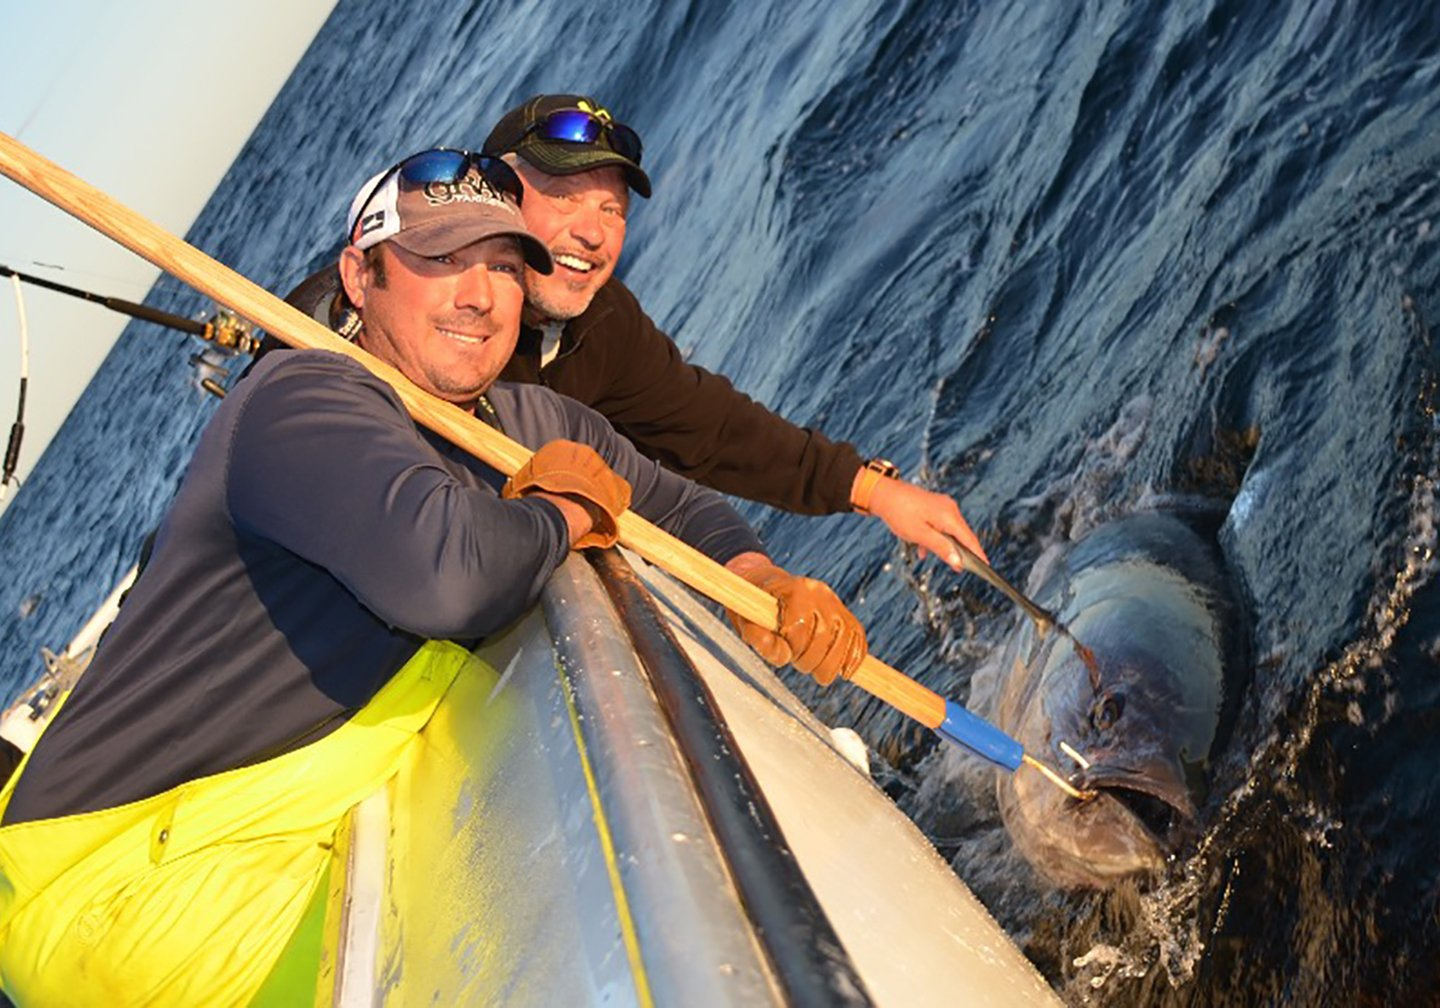 Two anglers leaning over the side of a boat next to a giant Bluefin Tuna. One is holding a gaff hook attached to the Tuna's mouth.